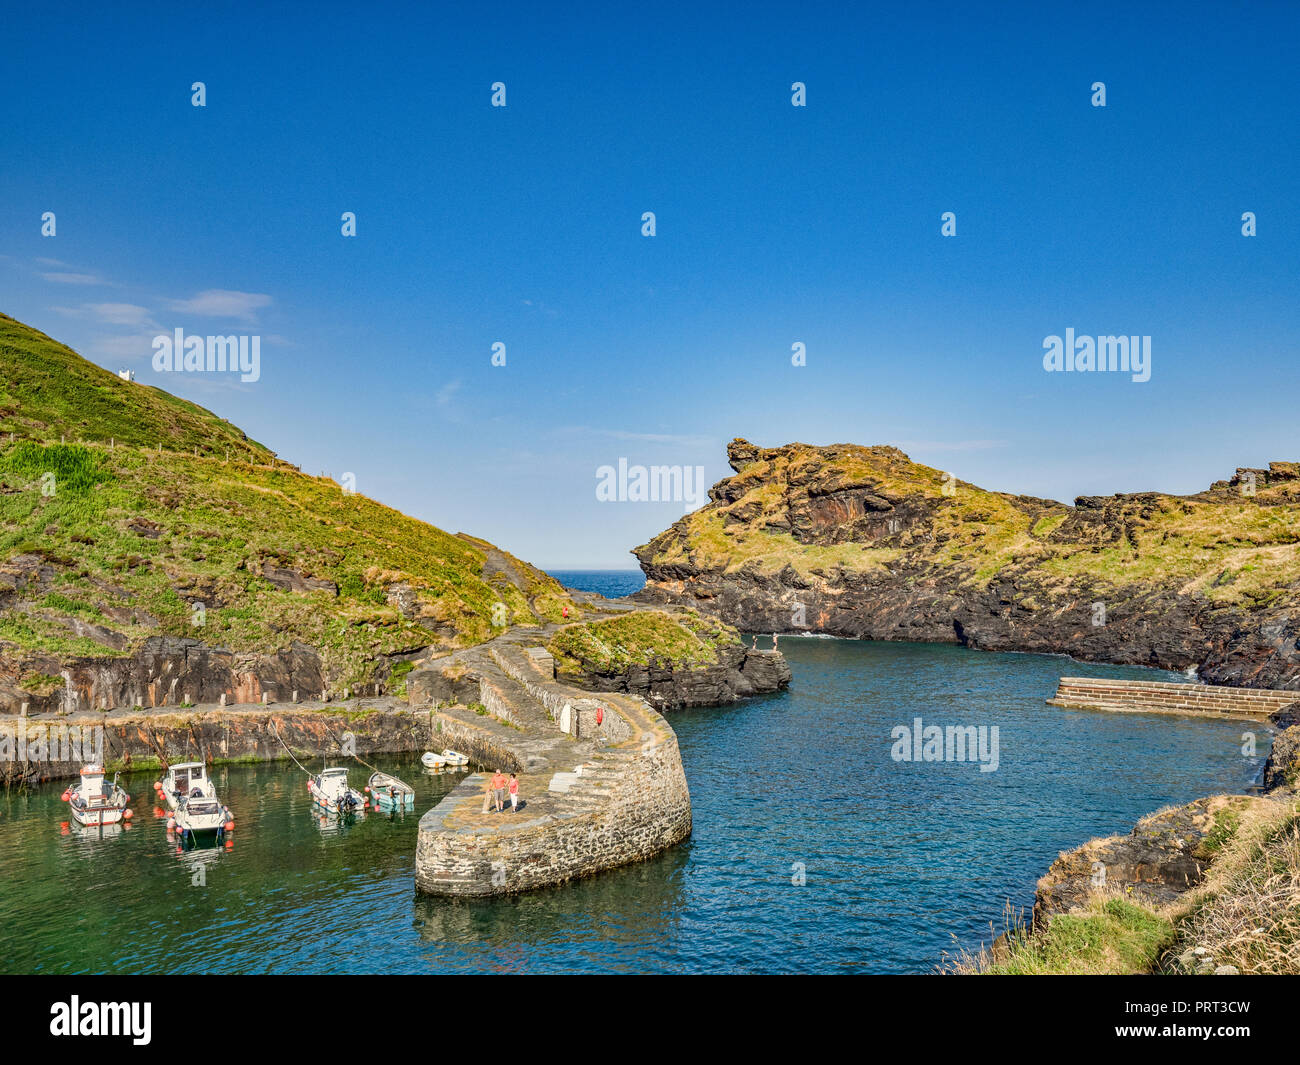 2 July 2018: Boscastle, Cornwall, UK - A couple admire the view of the harbour and its stunning rock formations from the breakwater. Stock Photo